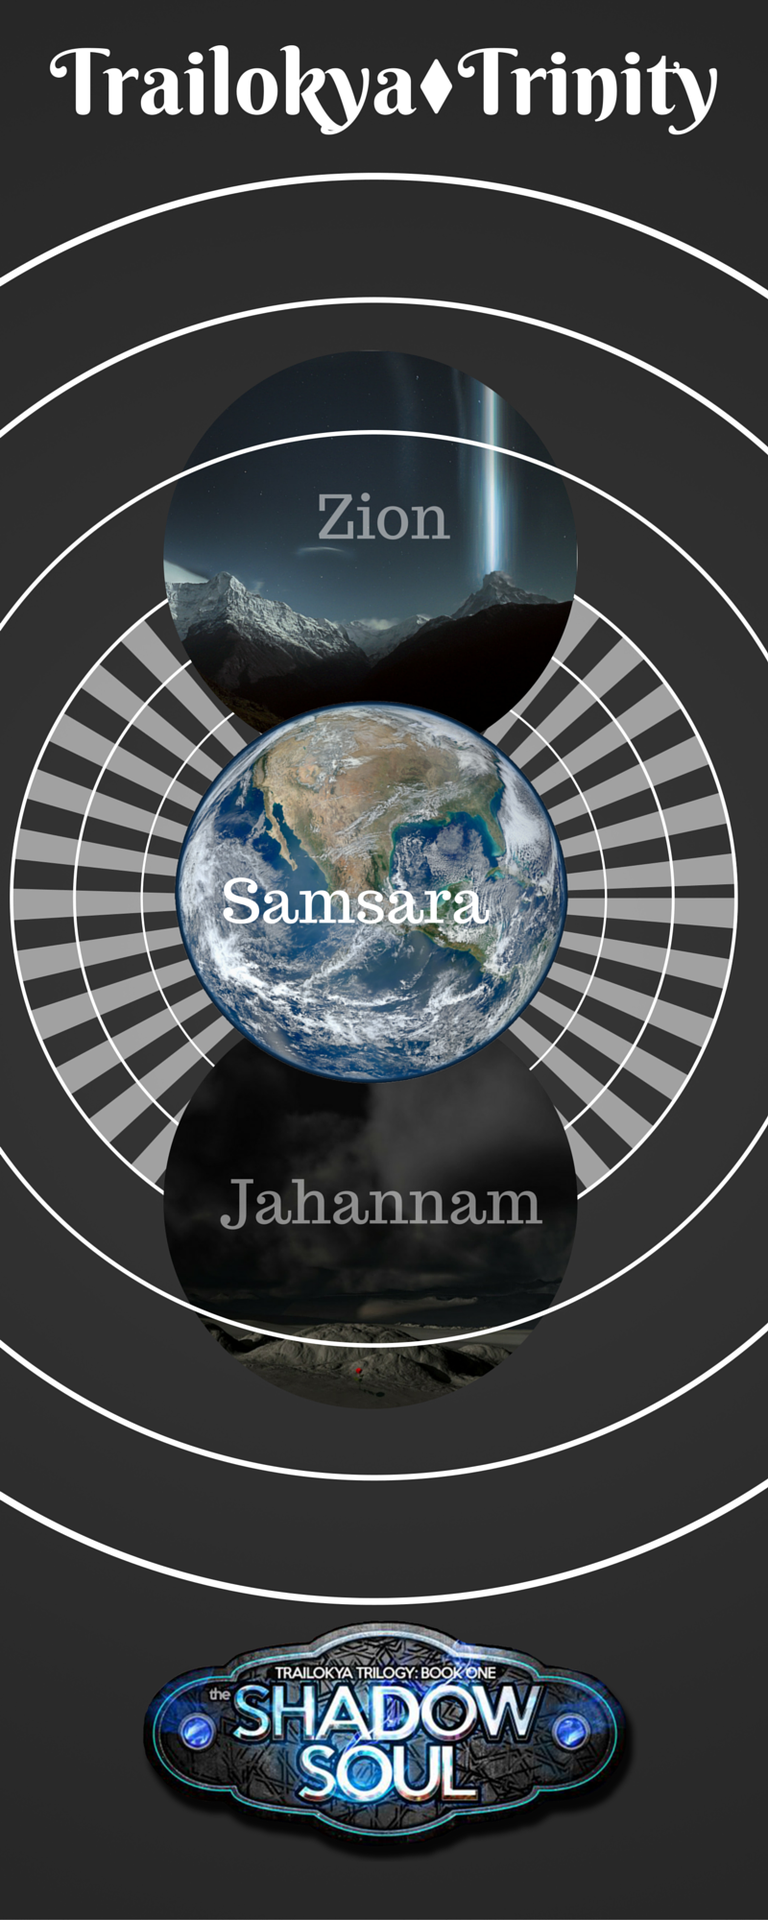 The term used to describe the intertwined worlds of Zion, Samsara, and Jahannam